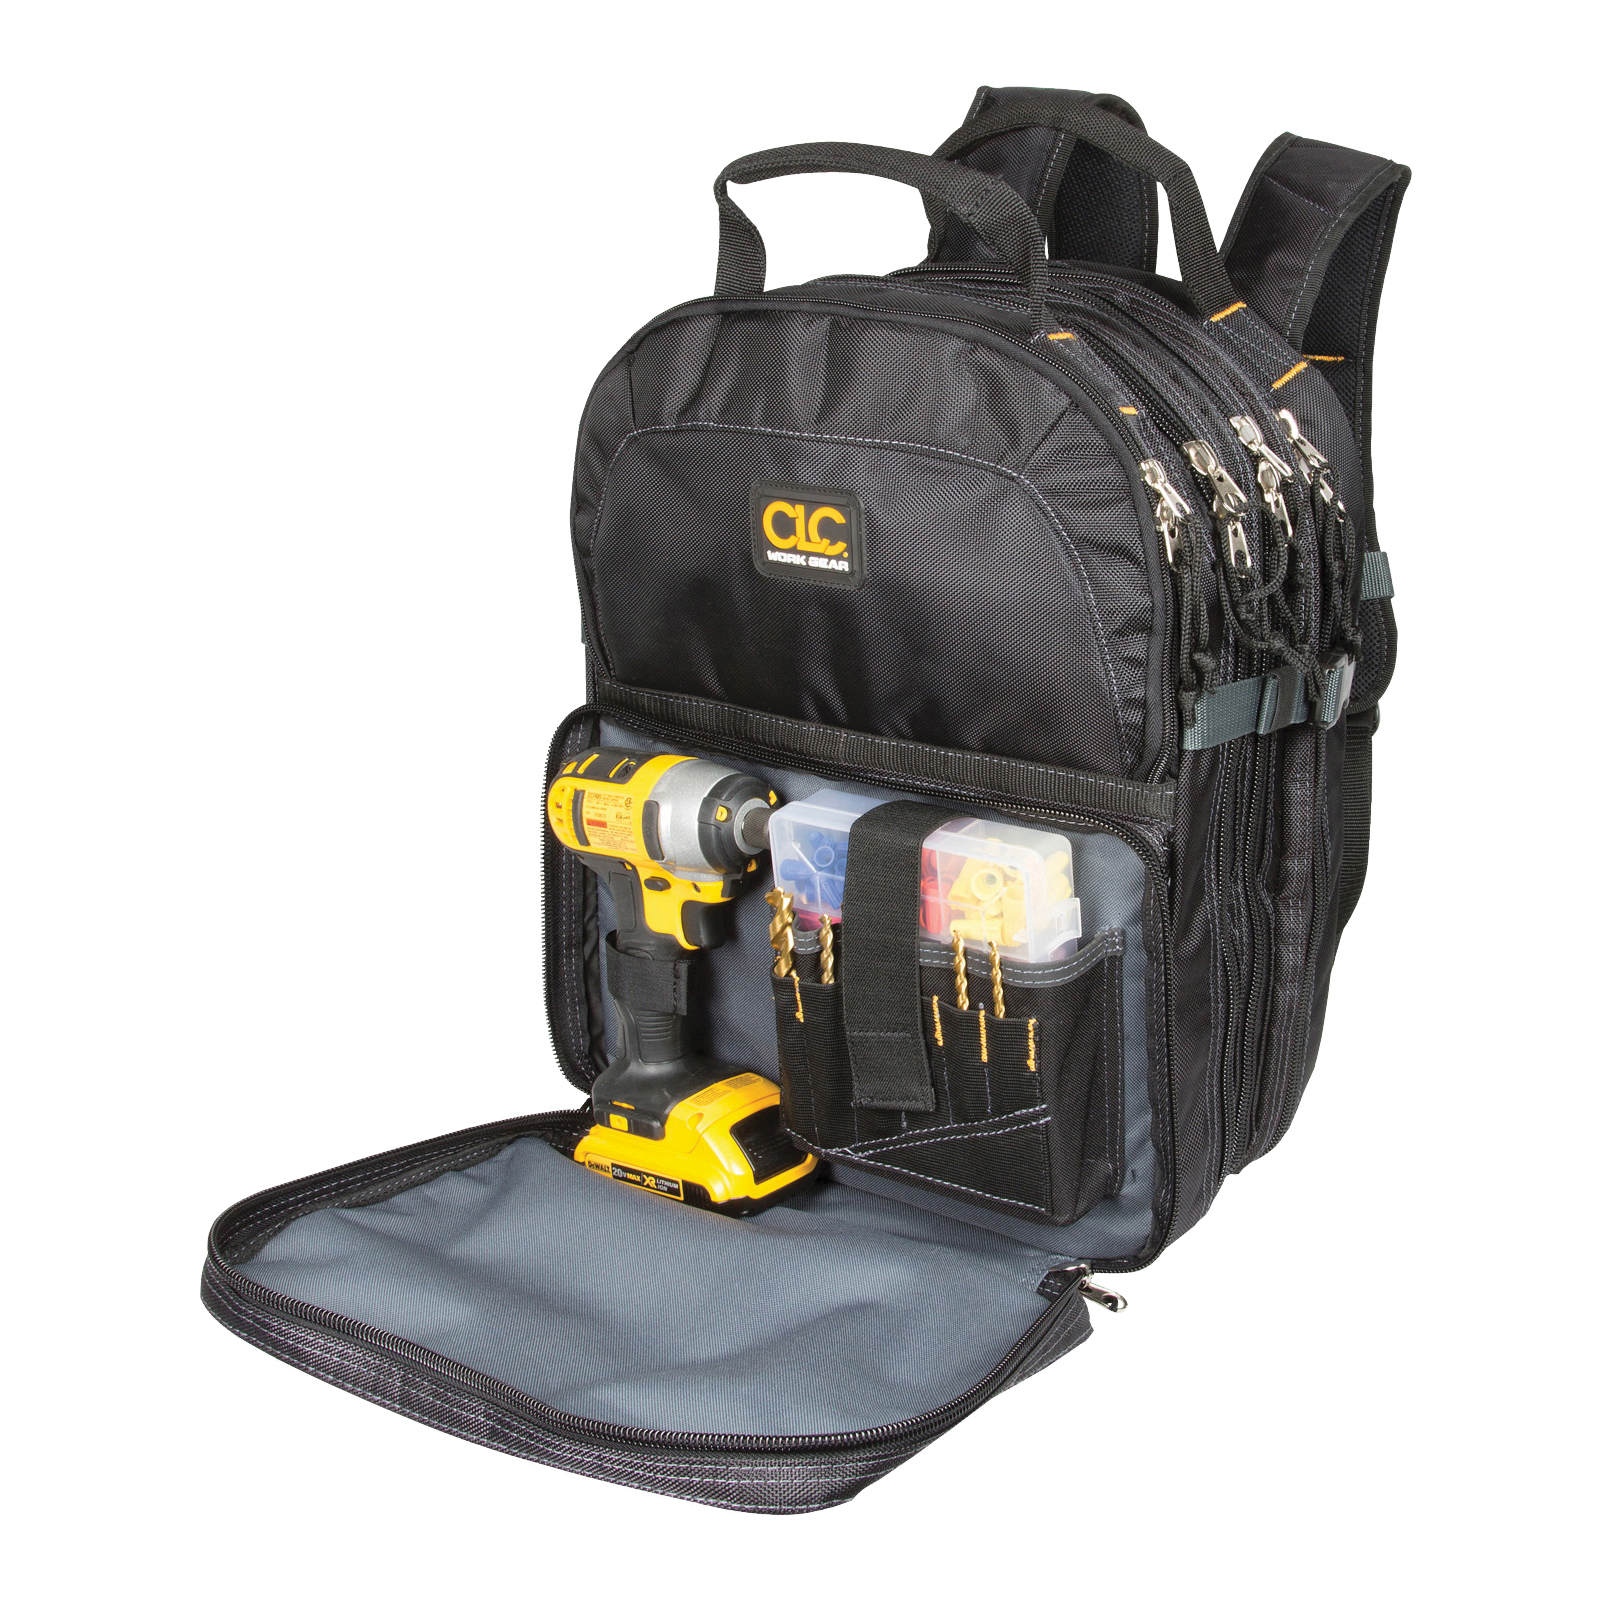 Picture of CLC 1132 Backpack, 13 in W, 9 in D, 17-1/2 in H, 75 -Pocket, Polyester, Black